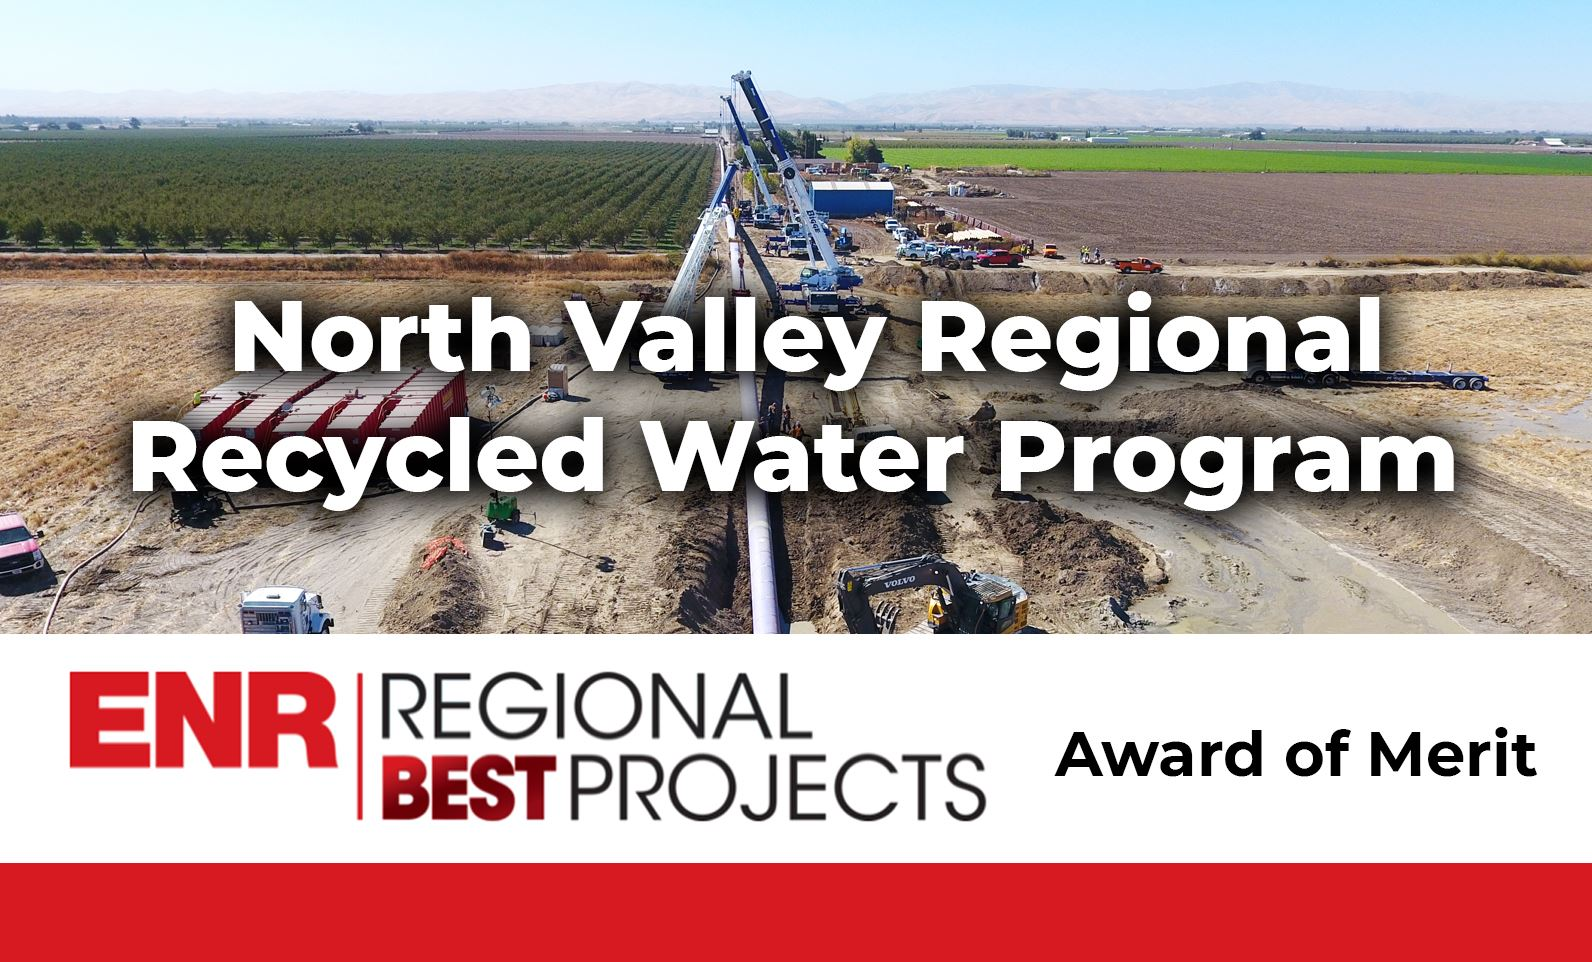 Image of North Valley Regional Recycled Water Program